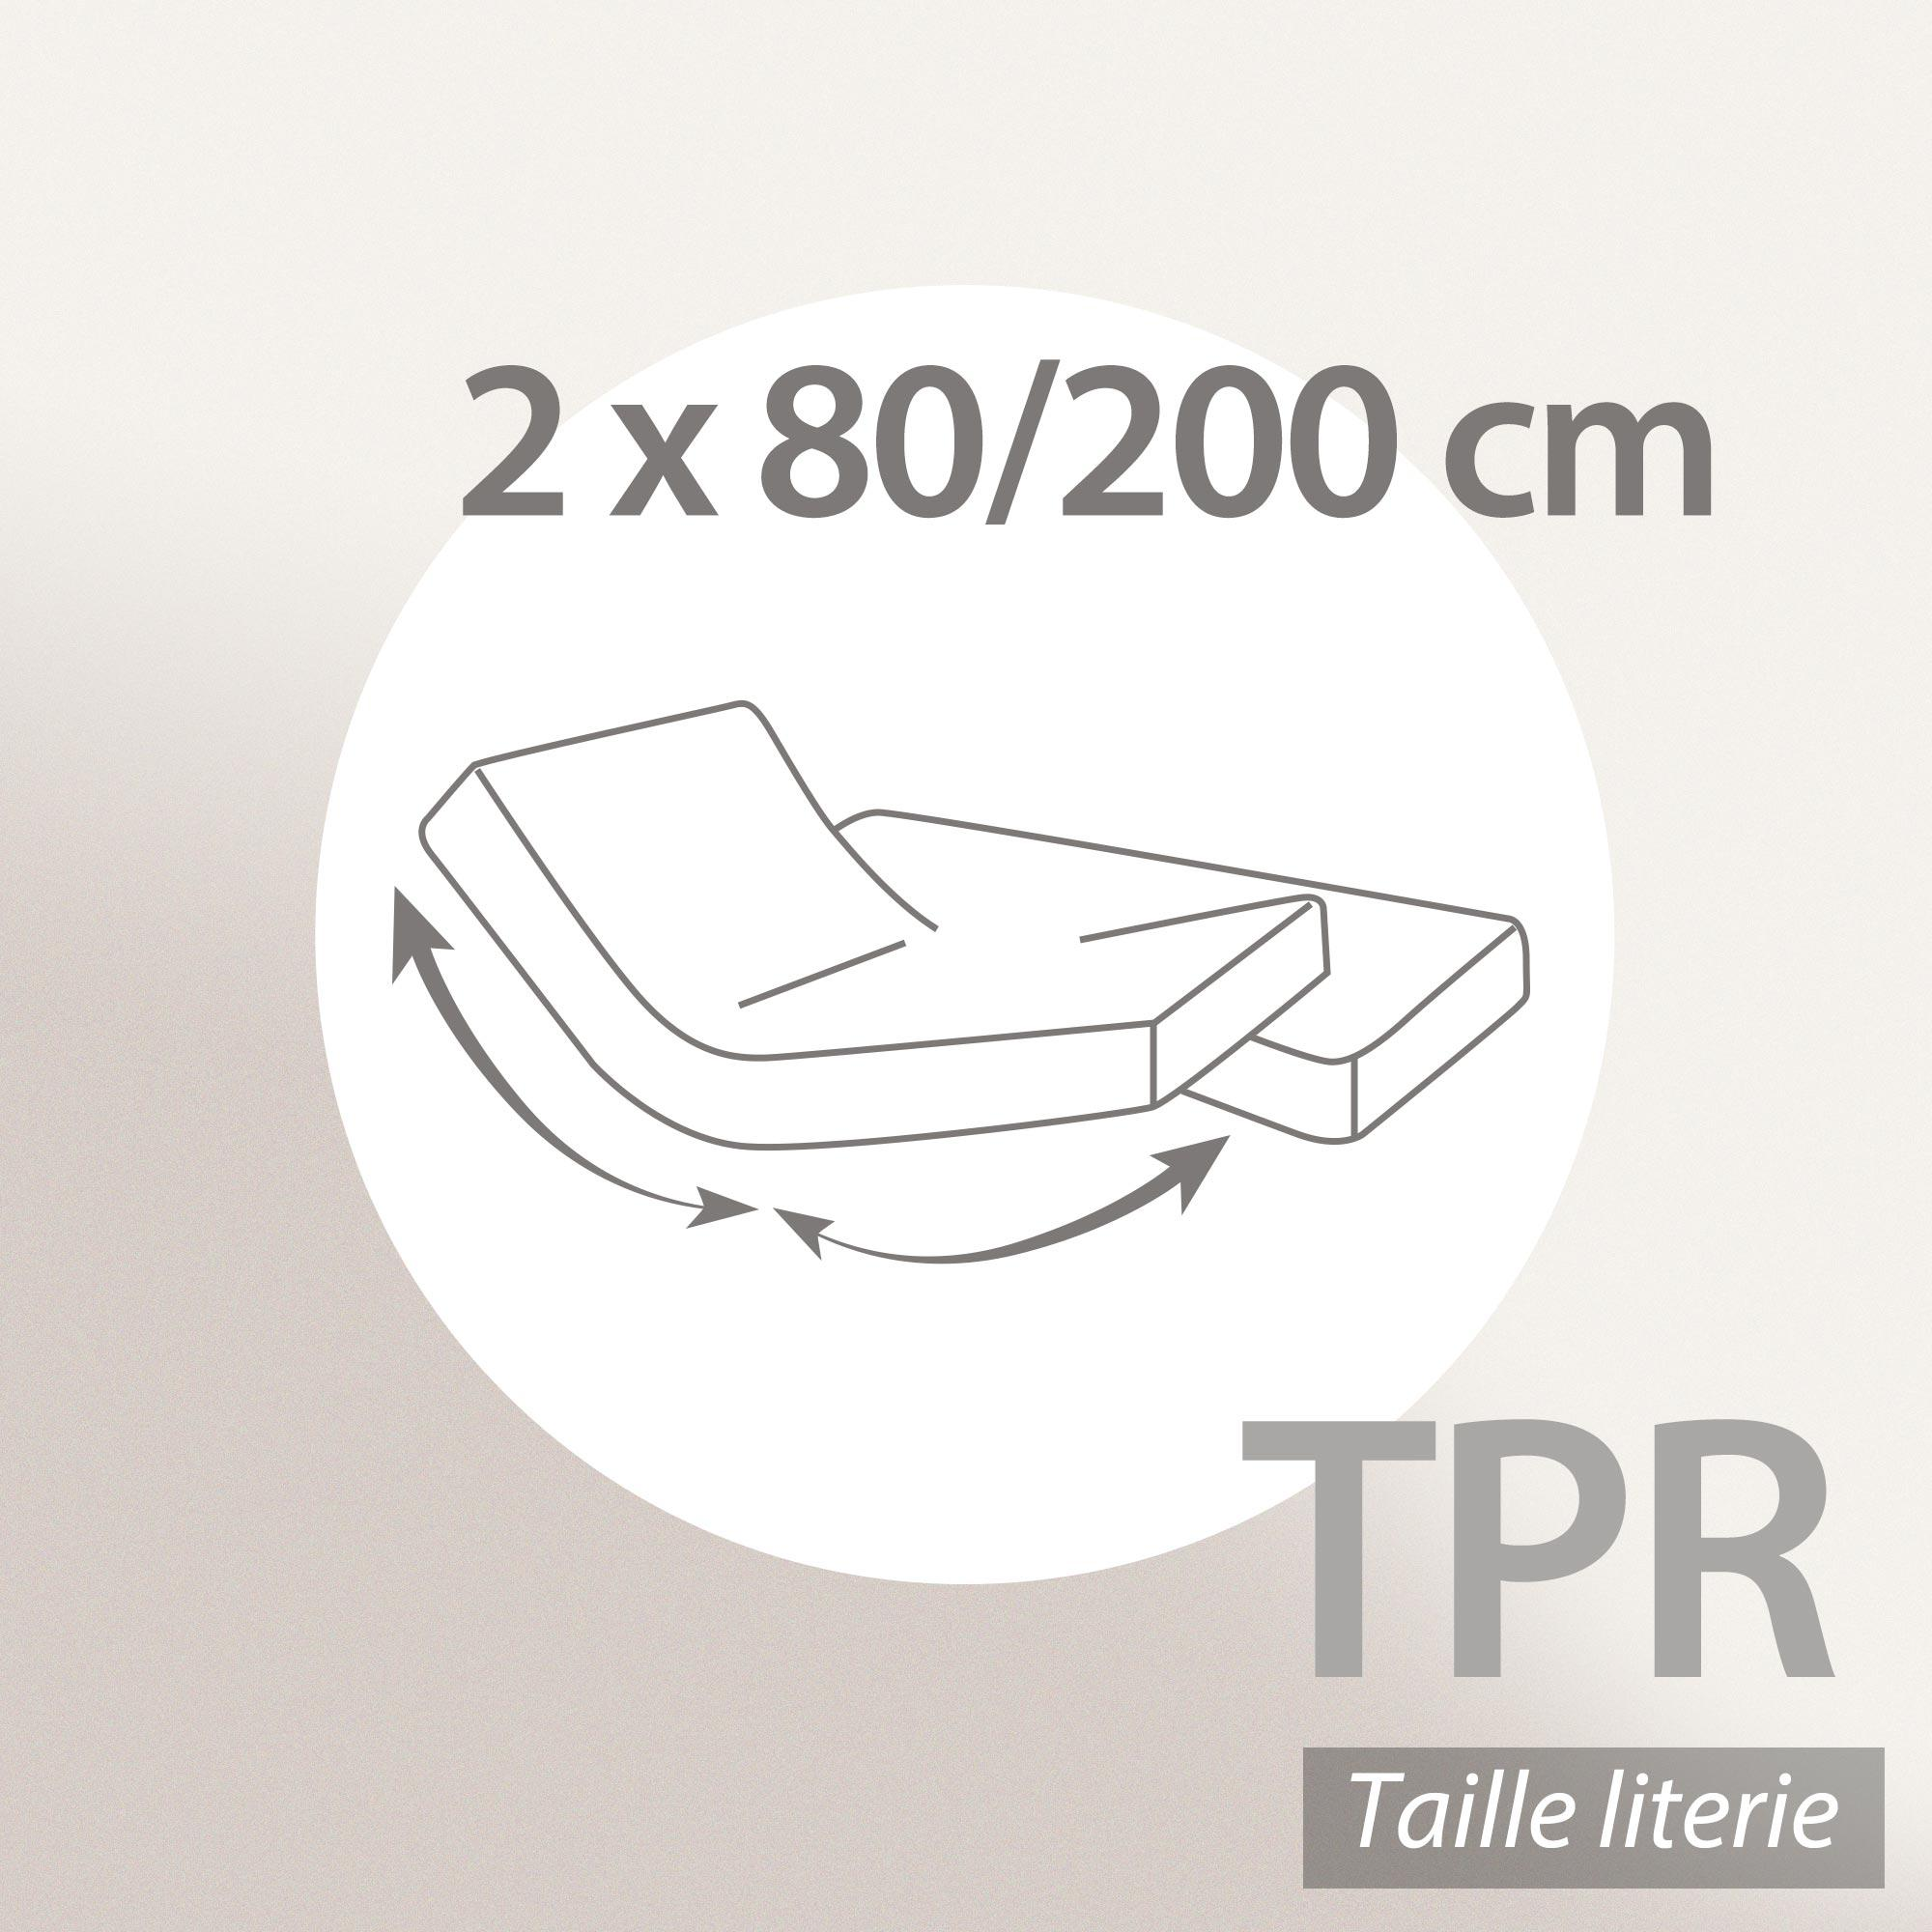 prot ge matelas imperm able 2x80x200 cm lit articul tpr bonnet 23cm arnon molleton 100 coton. Black Bedroom Furniture Sets. Home Design Ideas